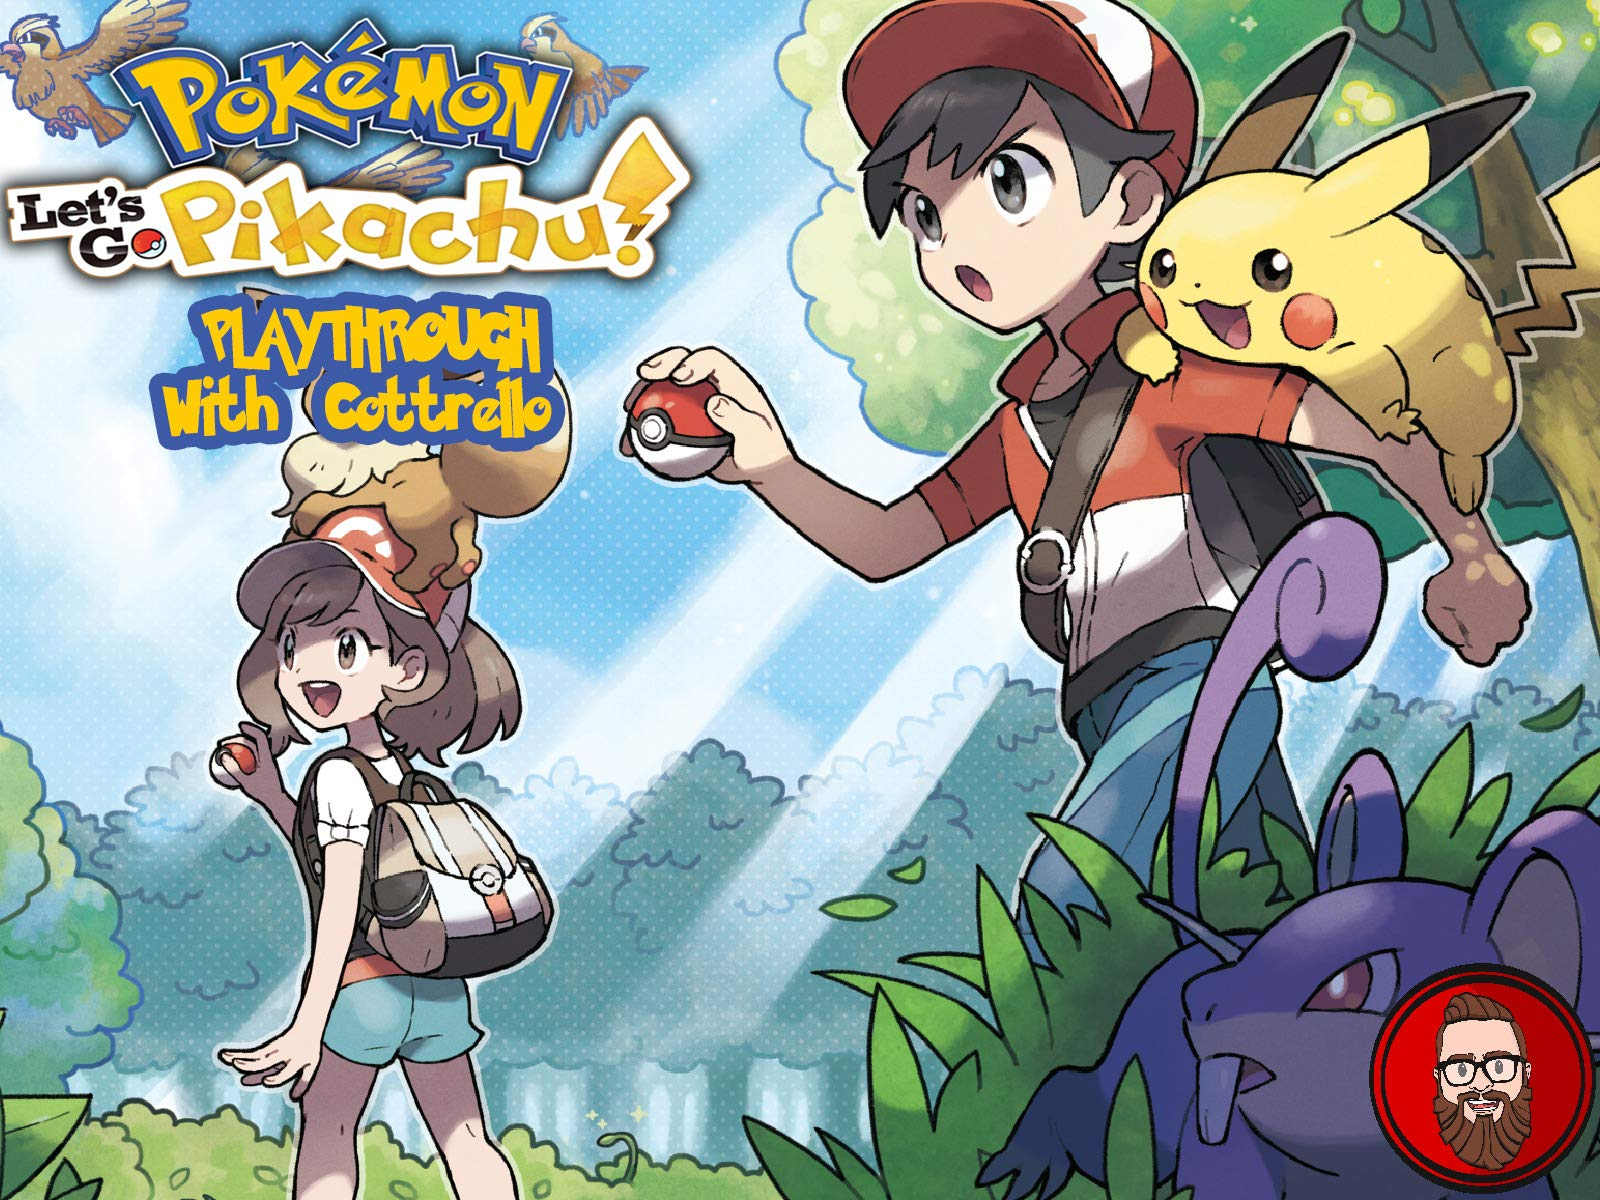 Watch Pokemon Let S Go Pikachu Playthrough With Cottrello On